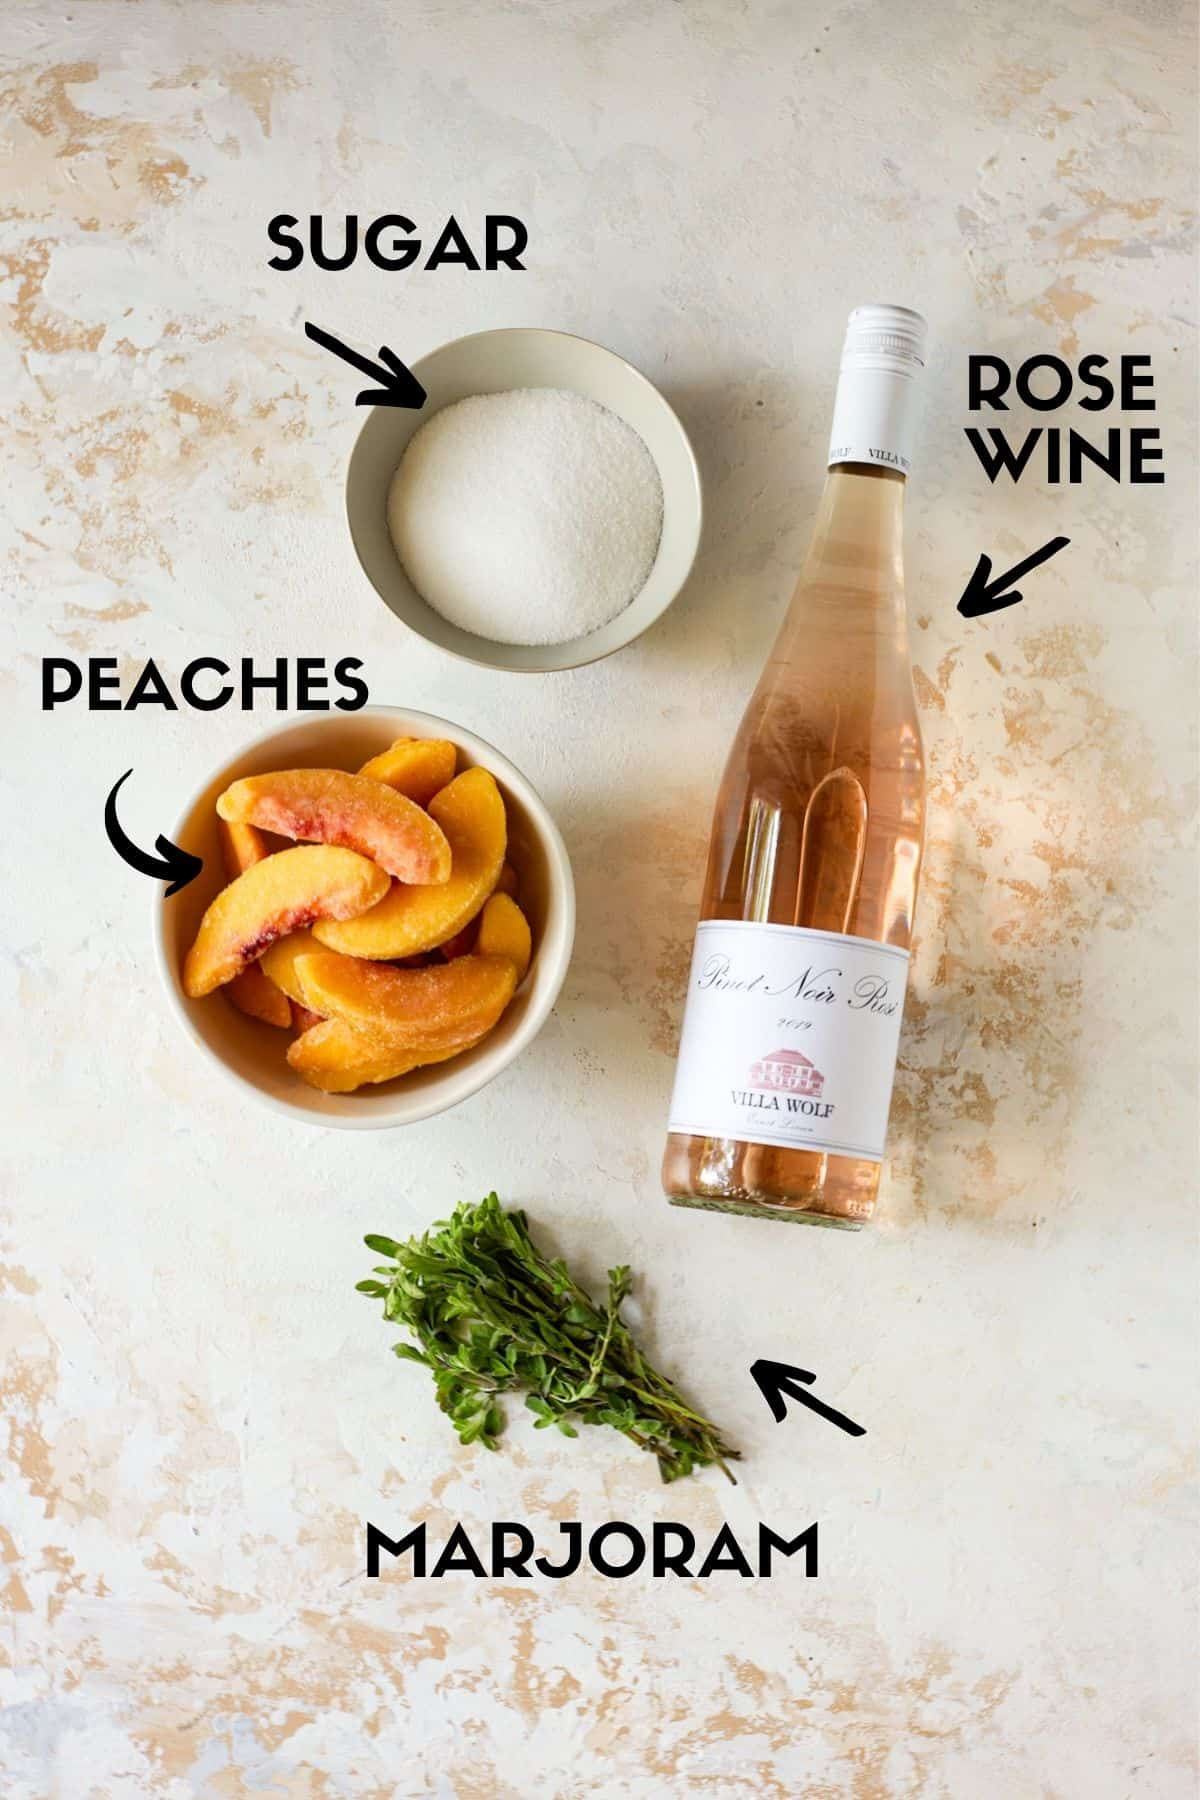 Ingredients for Peach Frosé recipe, including Rosé wine, peaches, sugar and marjoram.